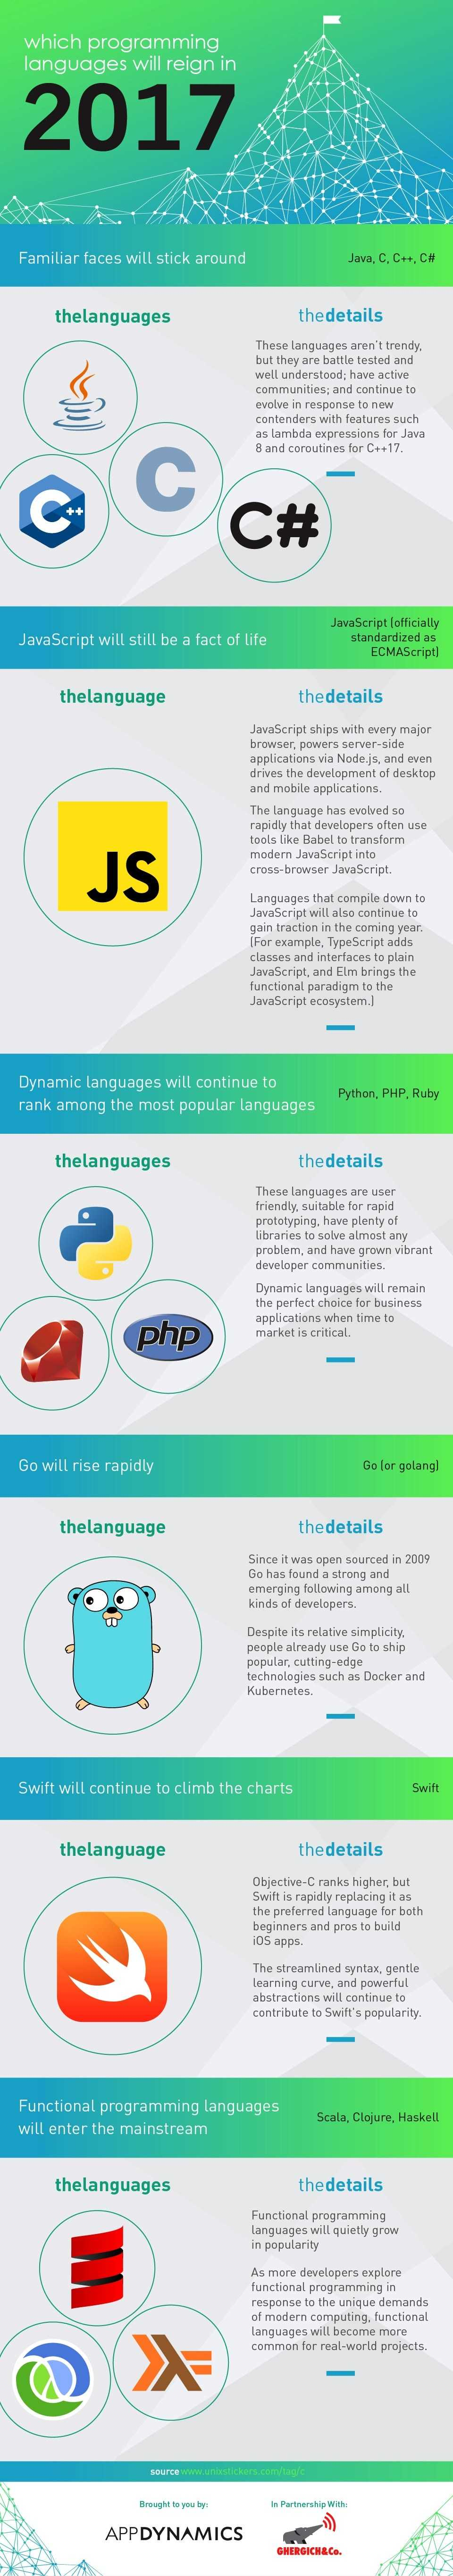 which-programming-language-will-reign-in-2017